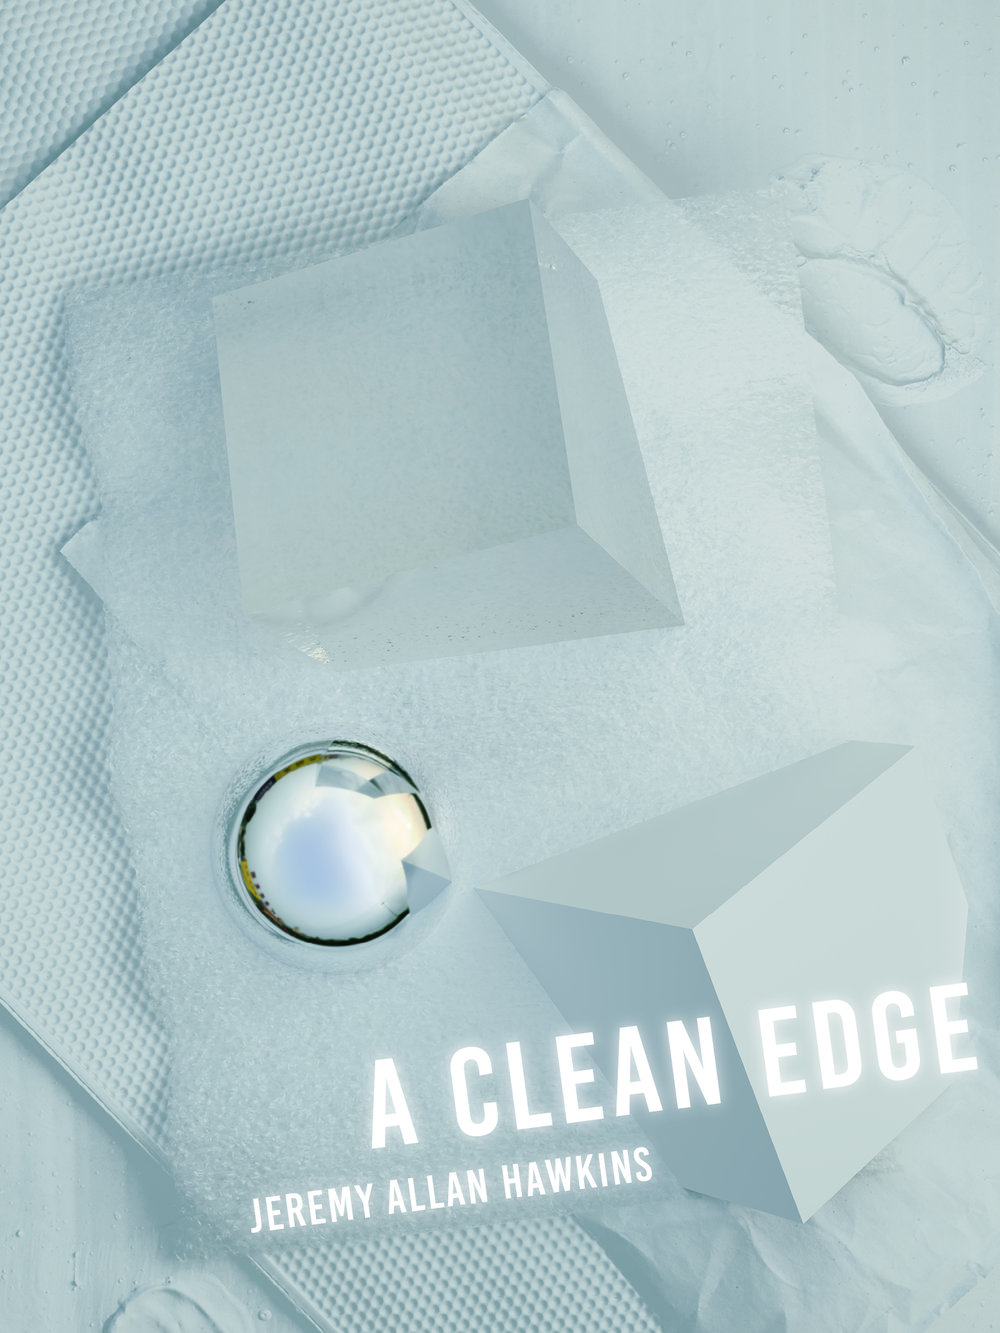 Cover + interior design for Jeremy Allan Hawkin's  A Clean Edge , winner of the 2016 BOAAT Press Chapbook Contest, selected by Richard Siken ( BOAAT Press , 2017).